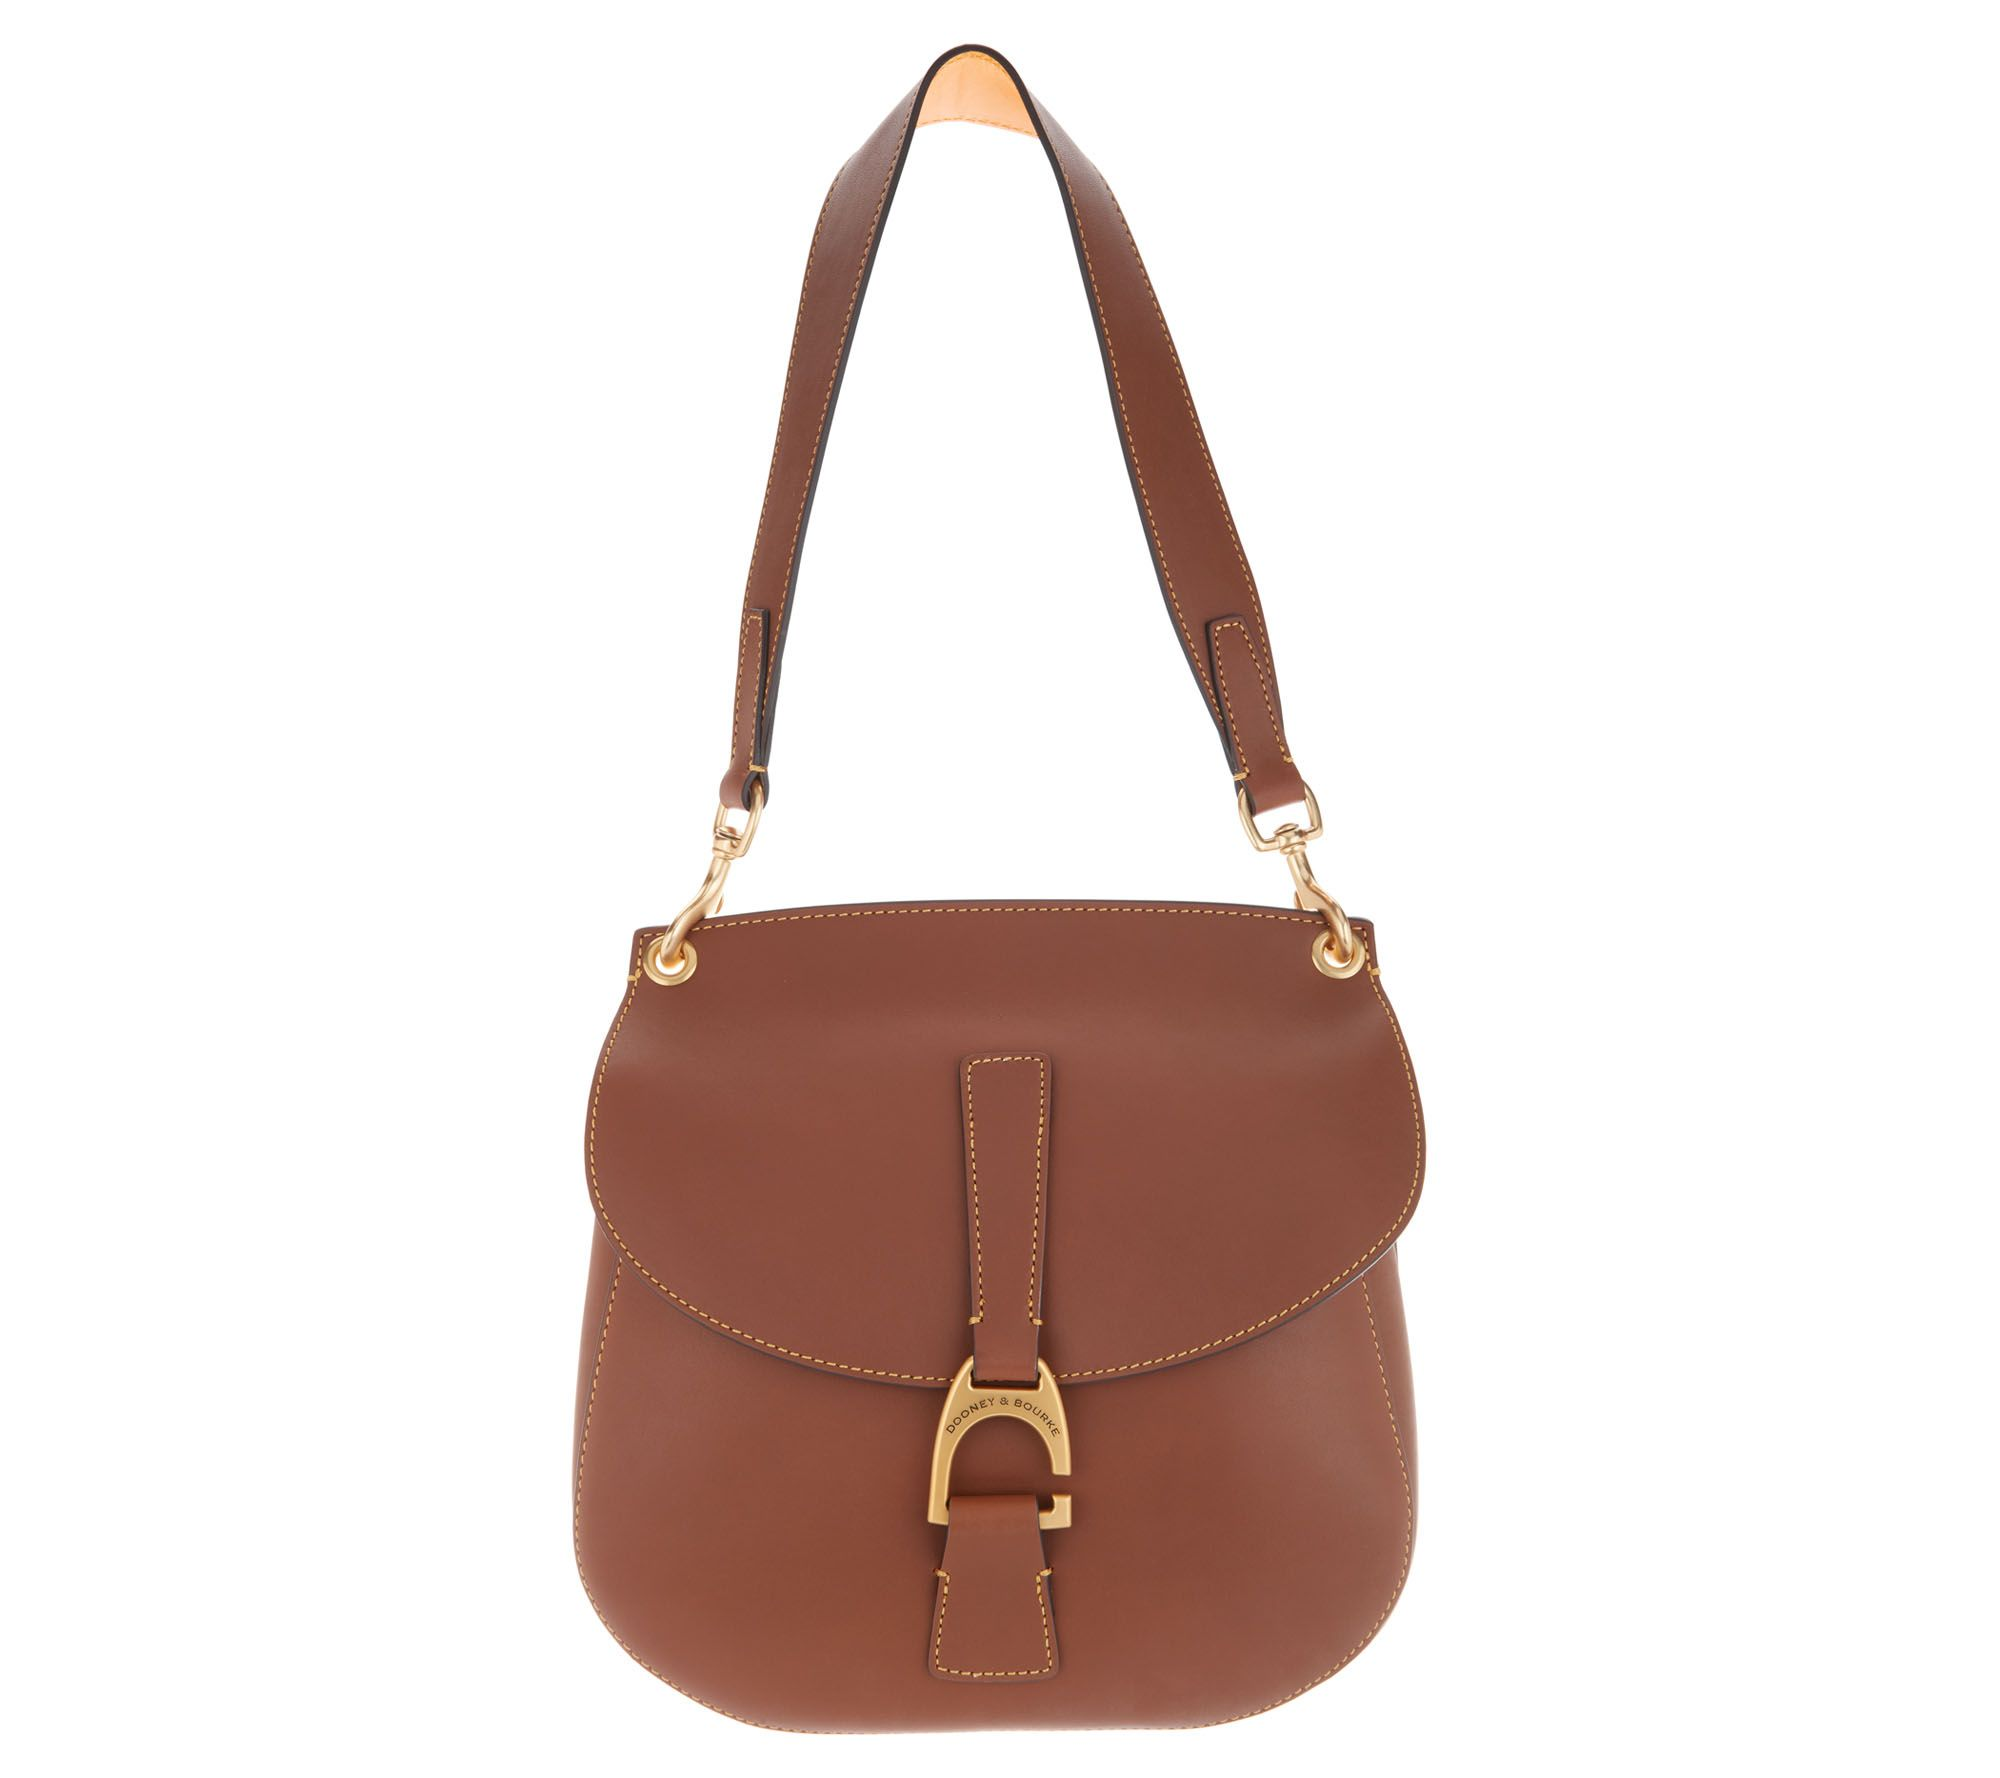 Dooney   Bourke Emerson Leather North South Shoulder Handbag- Reese - Page  1 — QVC.com 7eee3d93713ac